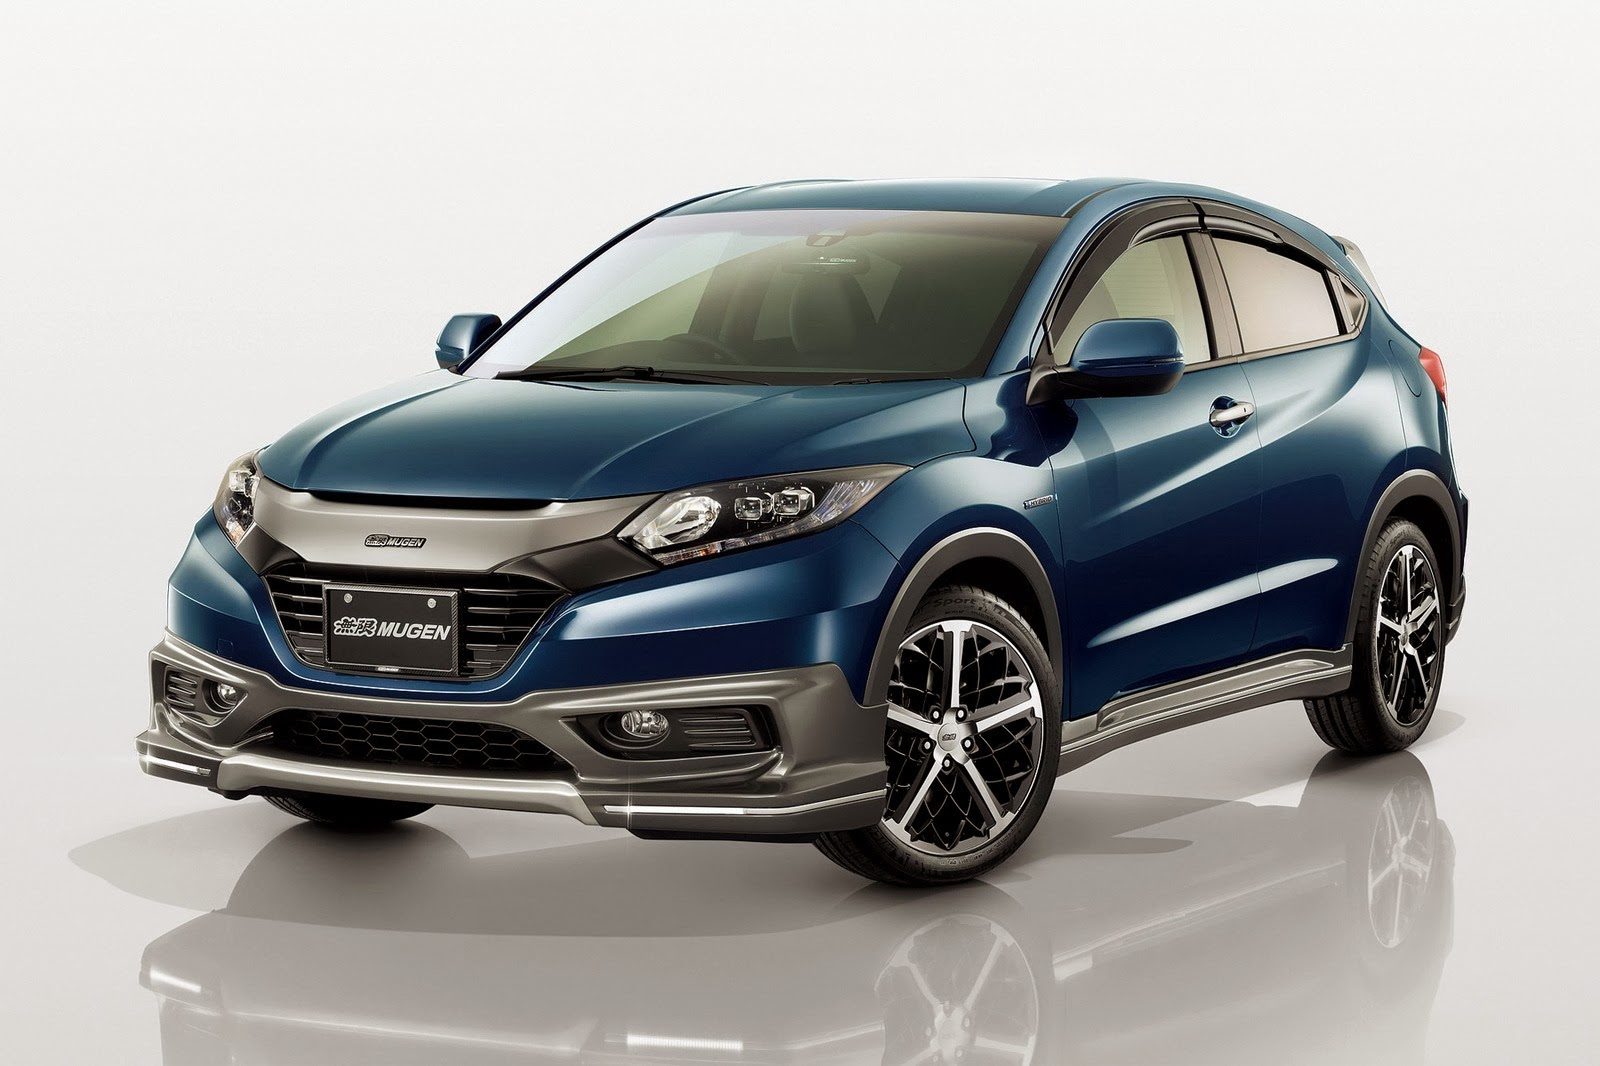 new honda vezel small crossover photo pictures gallery wallpaperautocars. Black Bedroom Furniture Sets. Home Design Ideas